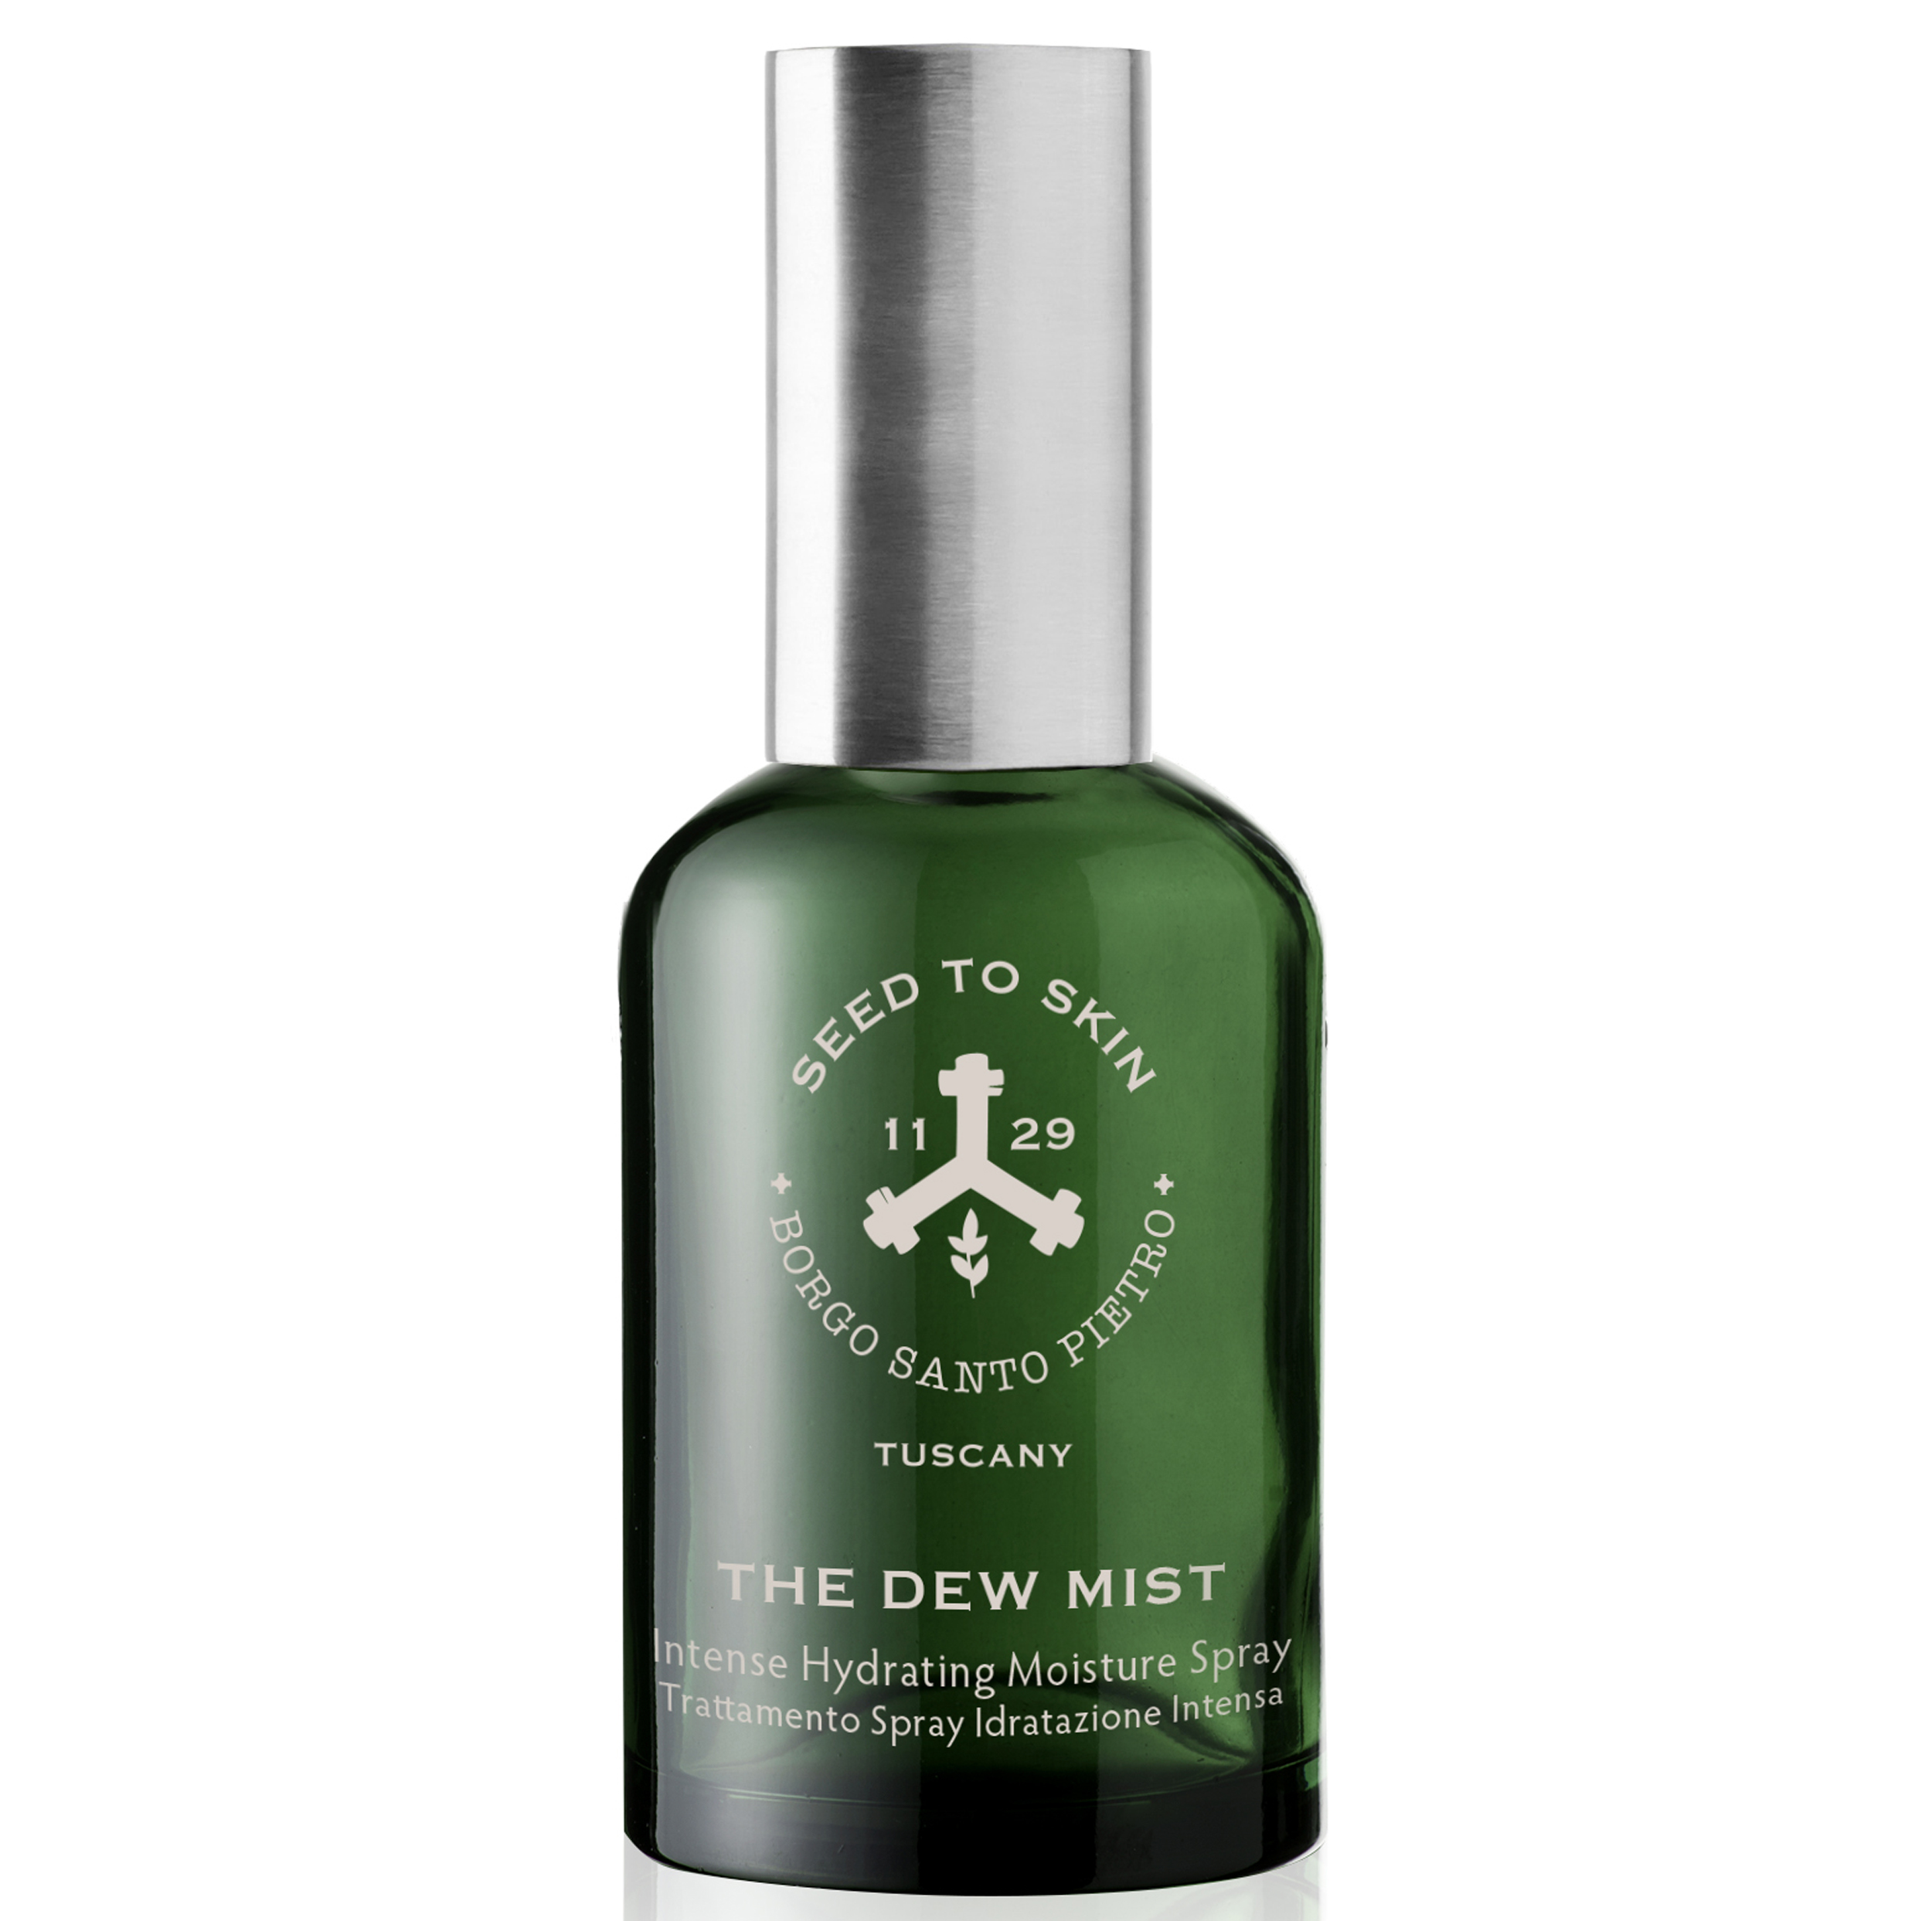 Seed to Skin The Dew Mist